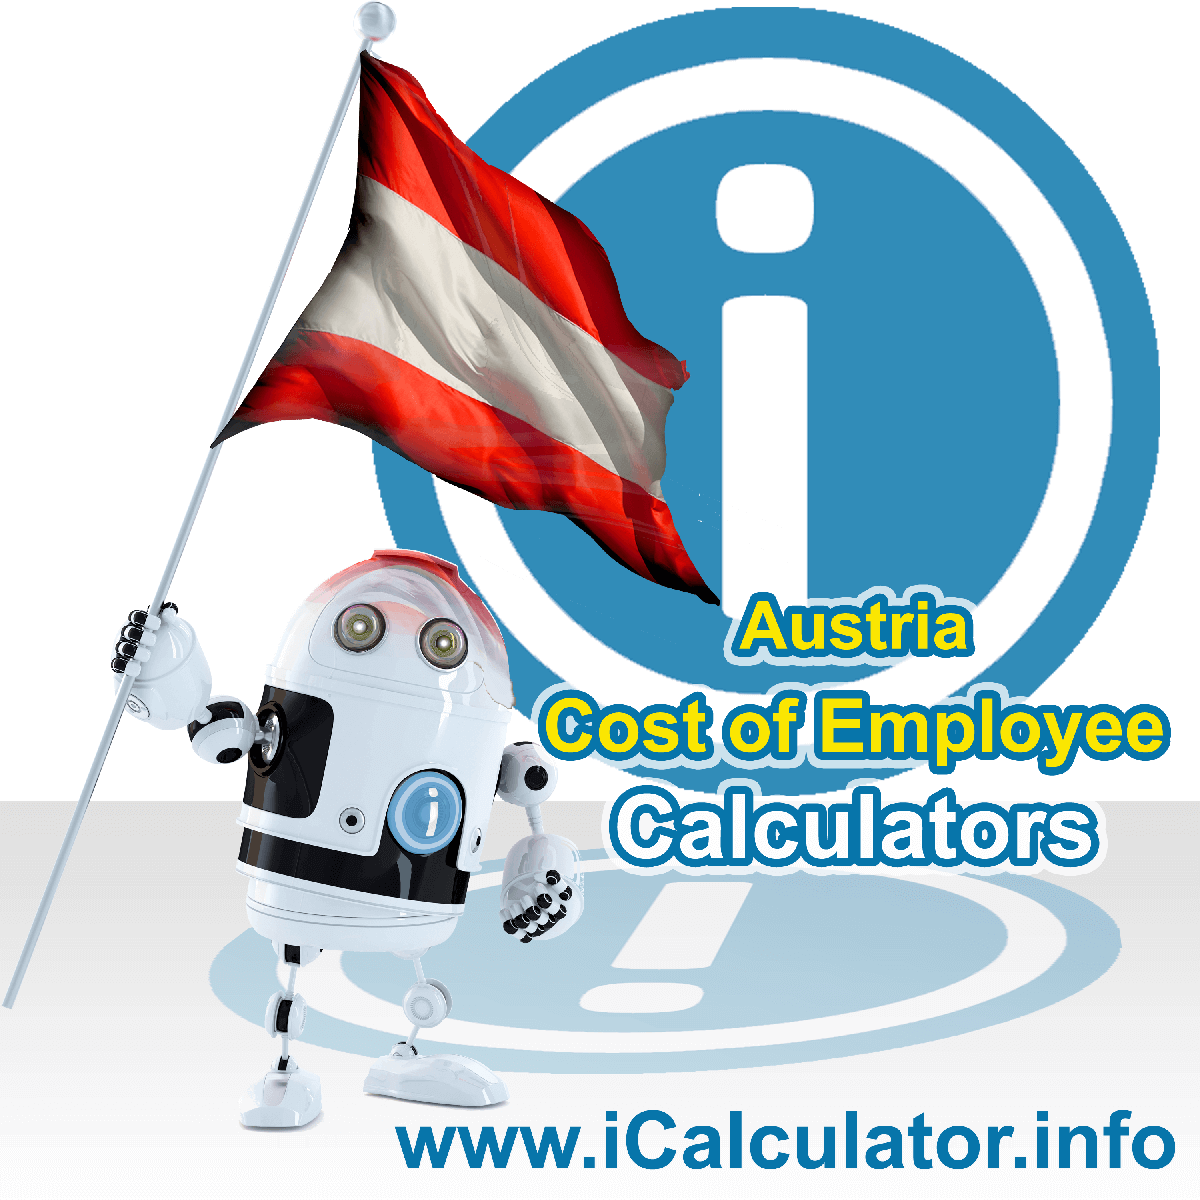 Austria Payroll Calculator. This image shows a new employer in Austria looking at payroll and human resource services in Austria as they want to hire an employee in Austria but are not sure of the employment costs. So, they make use of the Austria payroll calculator to understand their employment cost in Austria in 2021